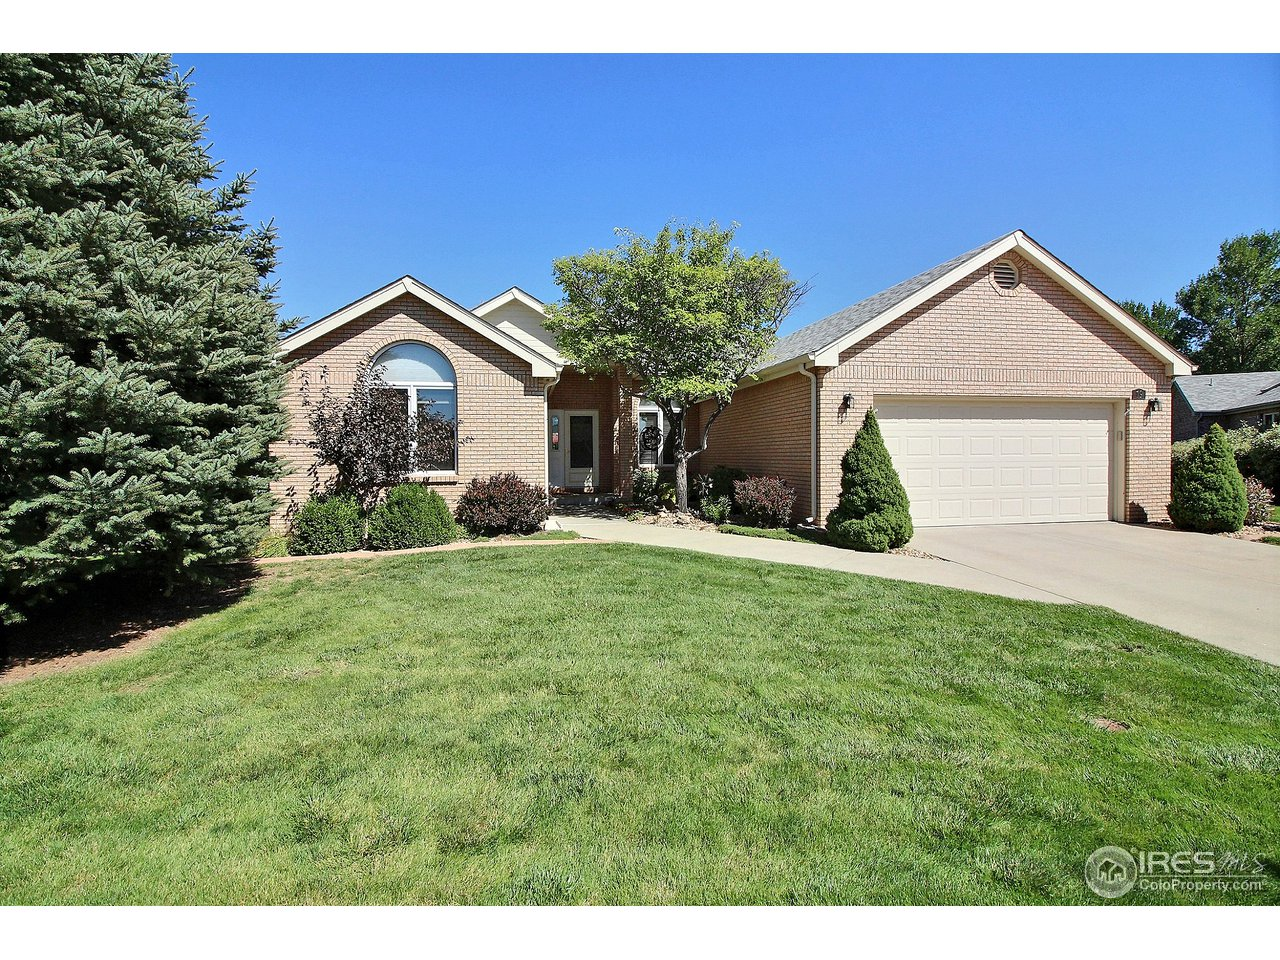 One of Greeley's most desirable golf course patio home communities, detached all brick home with 1964 sq ft on the main floor. Built by Tom Frame in 1994, this home has 2300 finished sq feet, 3 bedrooms, 3 baths and an office. Open floor plan with vaulted ceilings and a gas fireplace. Kitchen includes stainless steel appliances and a large island. Dining area, and large family room with access to wood deck and back yard. Located in quiet cul-de-sac. Within walking distance to golf course.